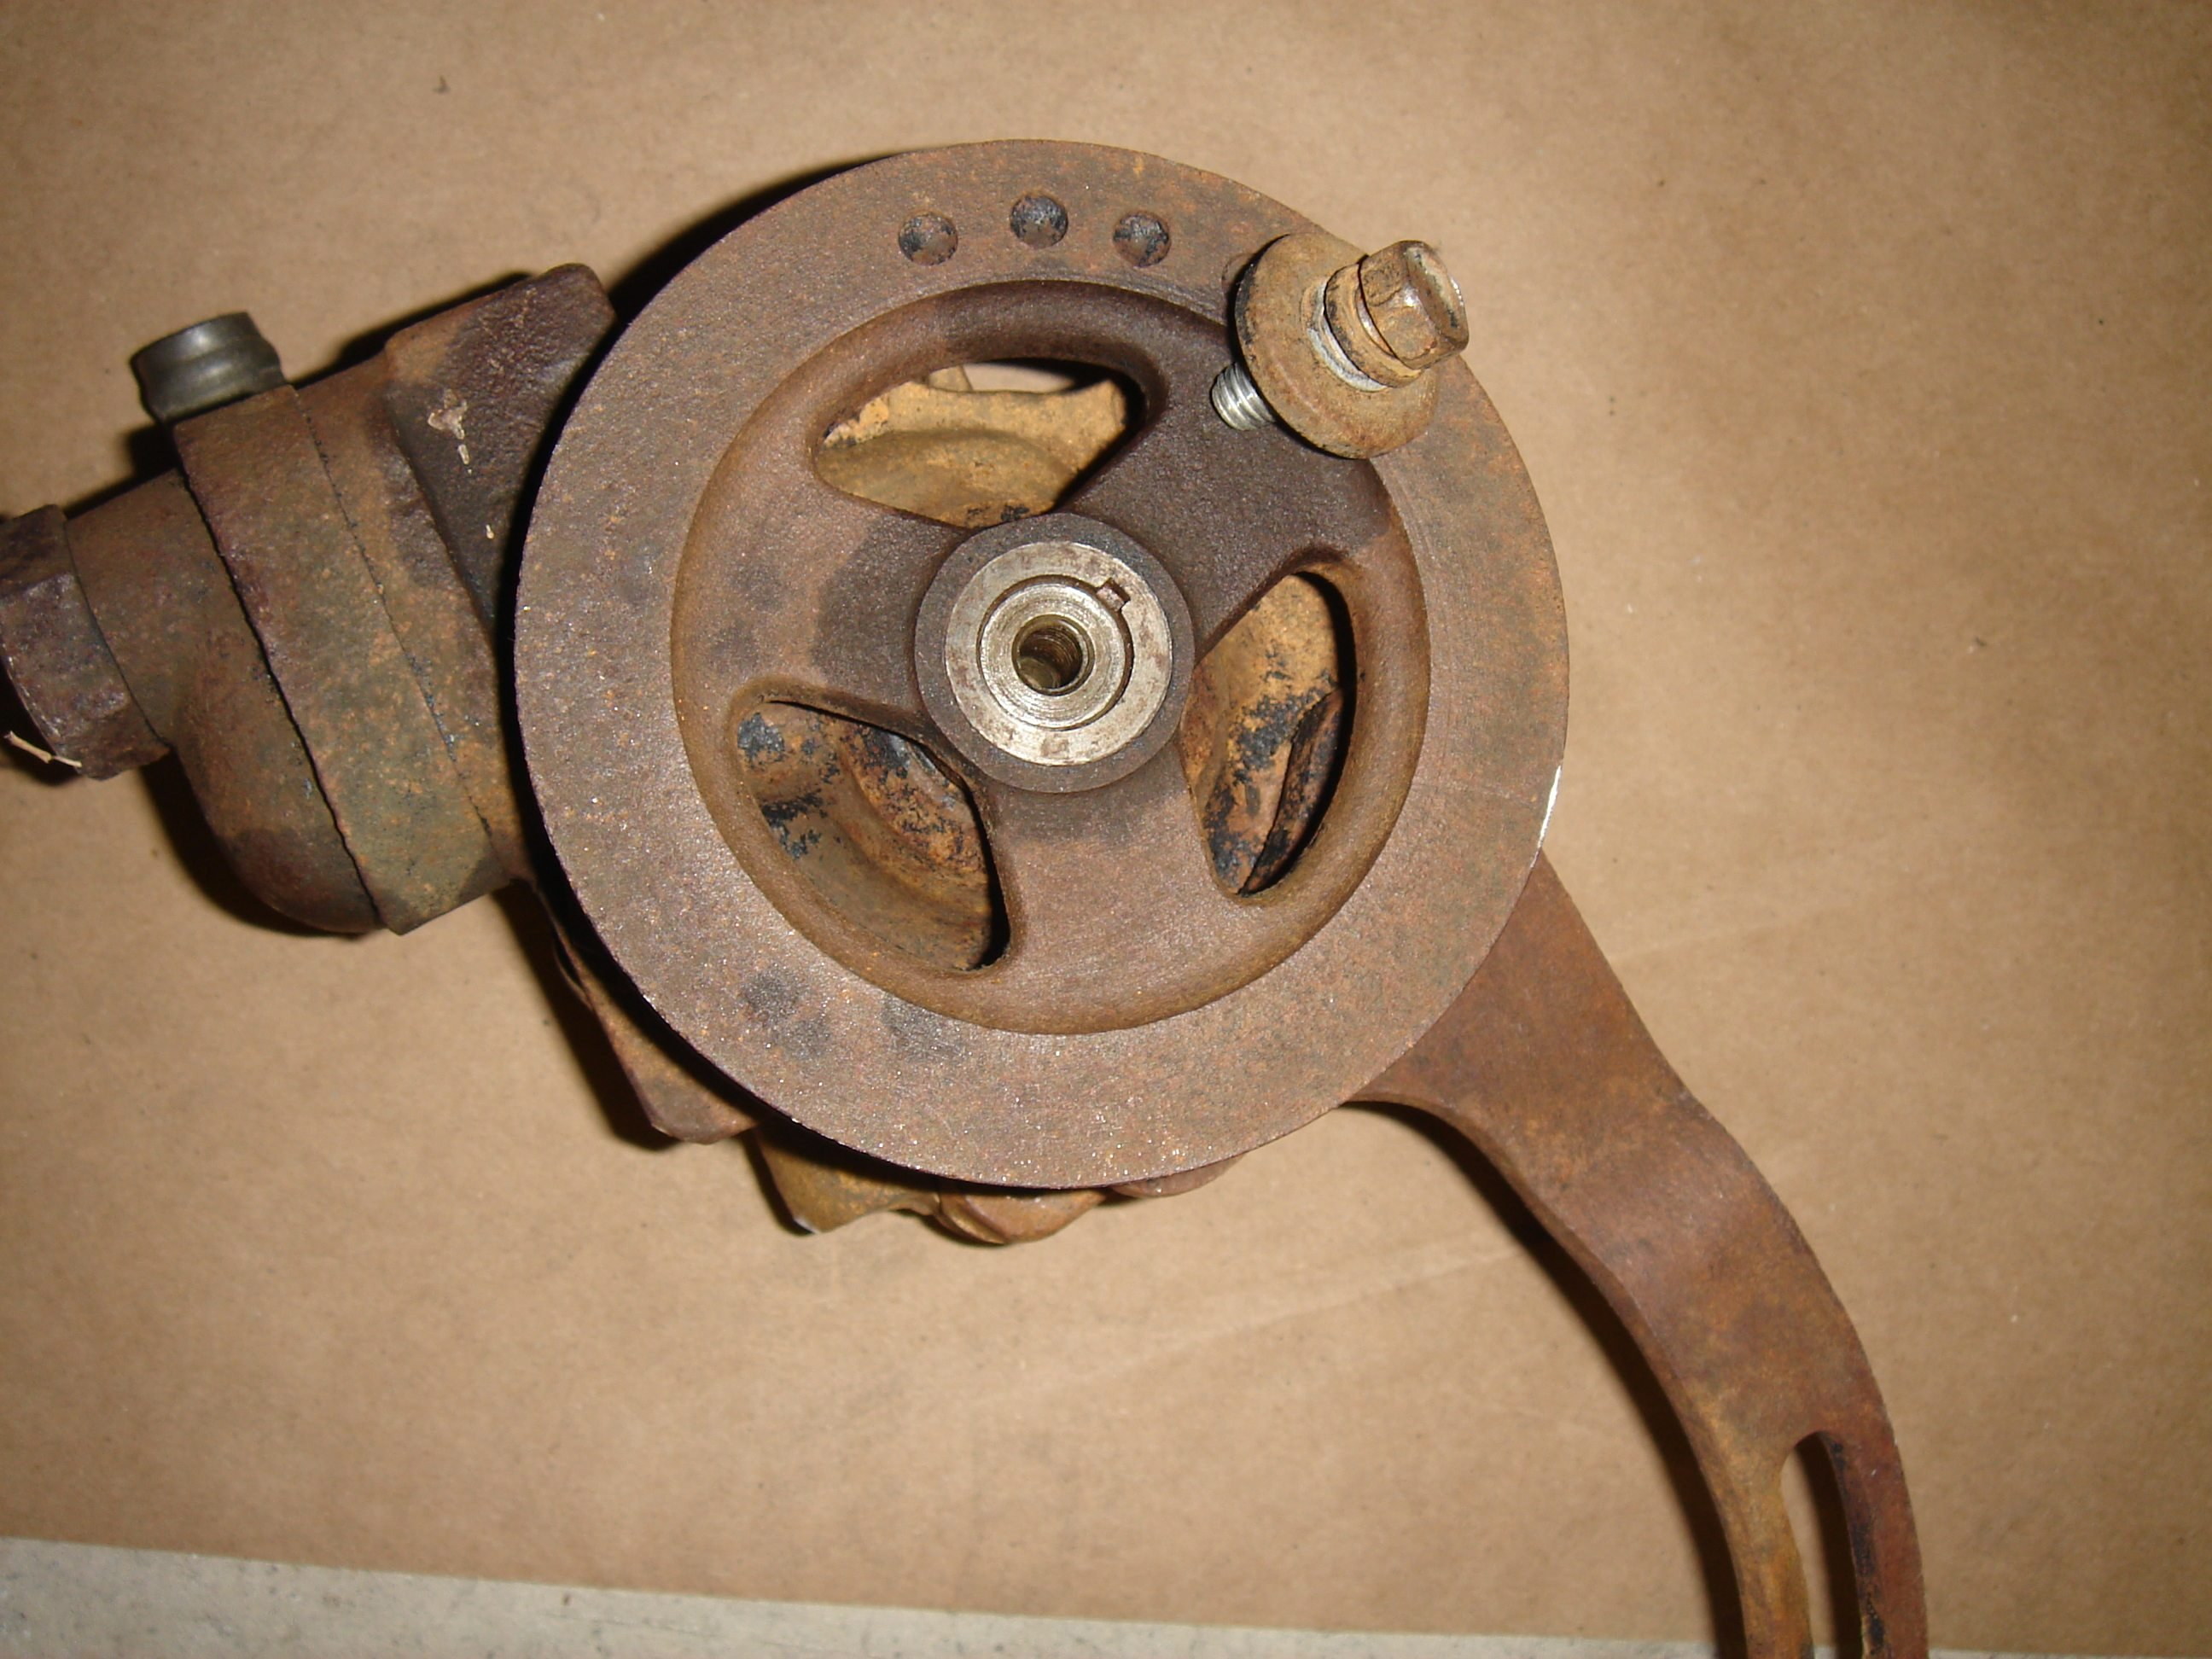 Bolt And Washer >> 1964 1/2 mustang generator pulley removal - Ford Mustang Forum